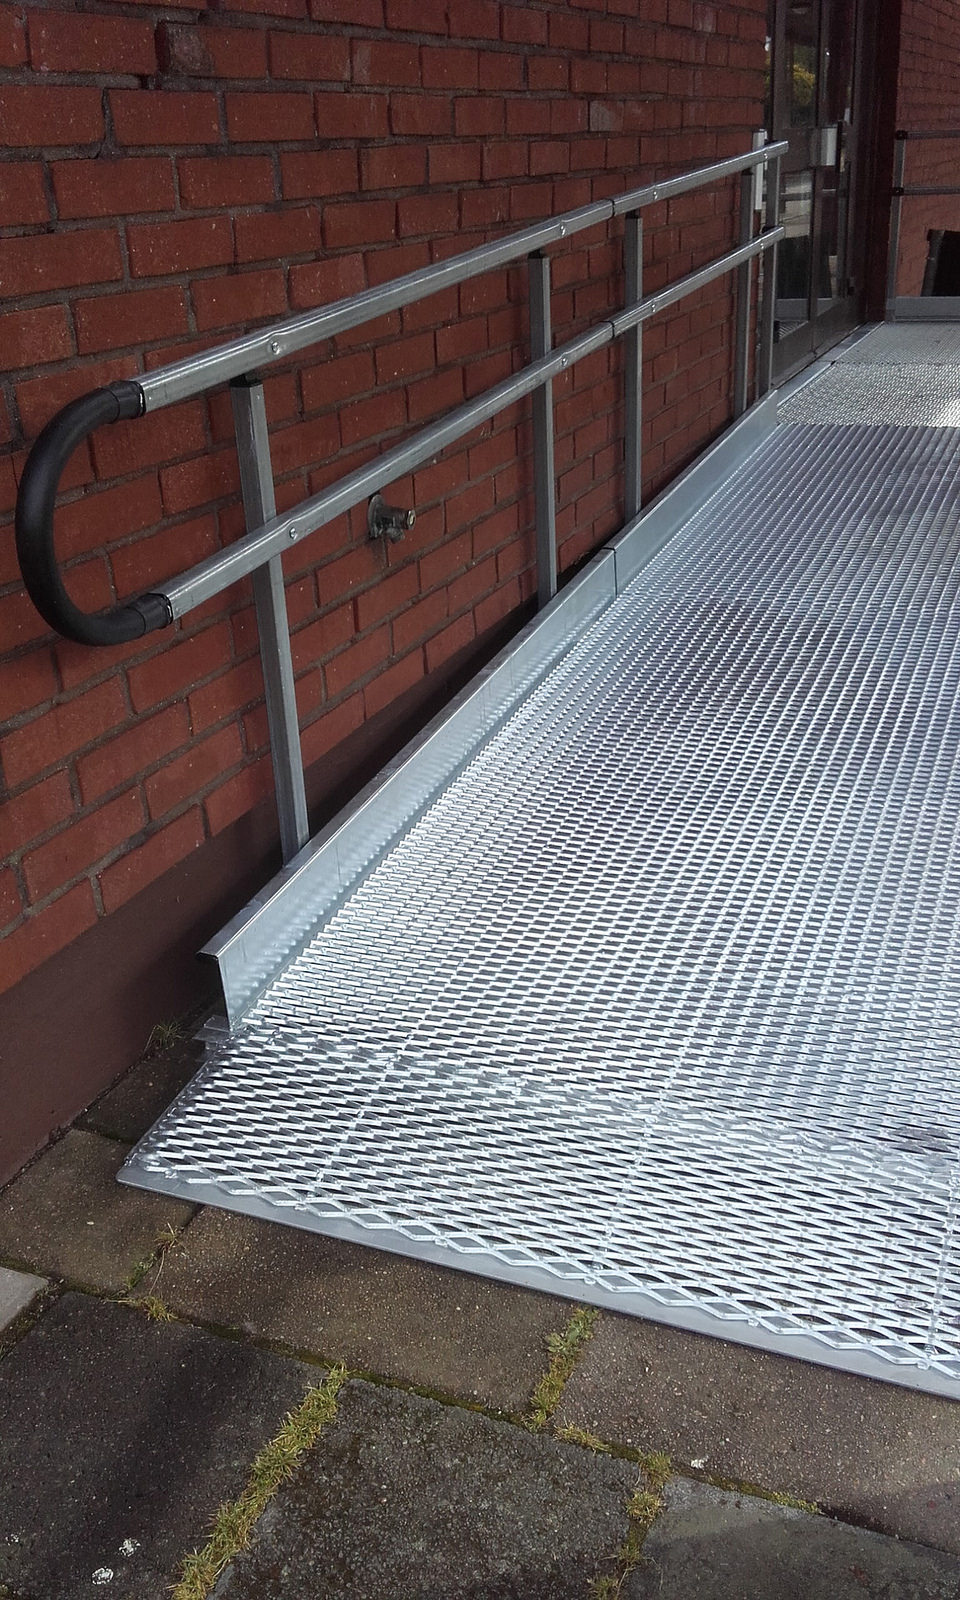 A wheelchair ramp in front of a brick building